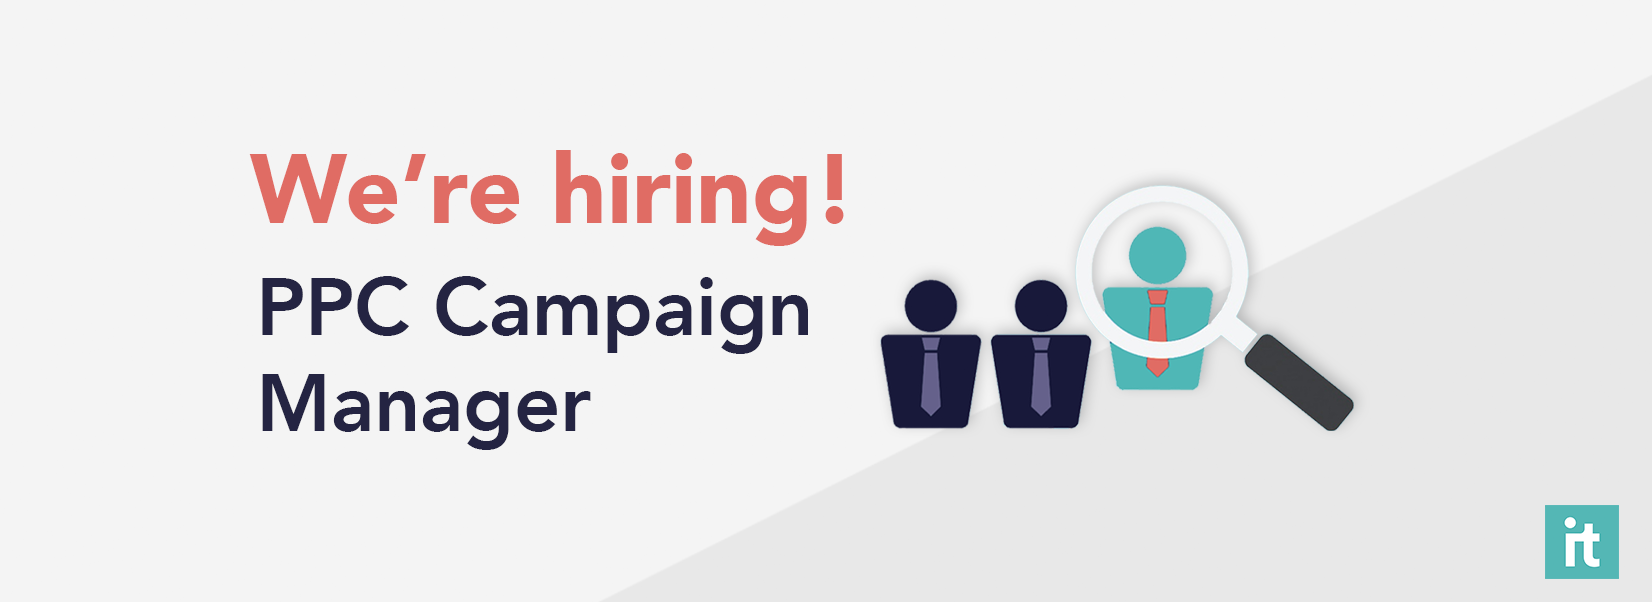 We're Hiring! PPC Campaign Manager